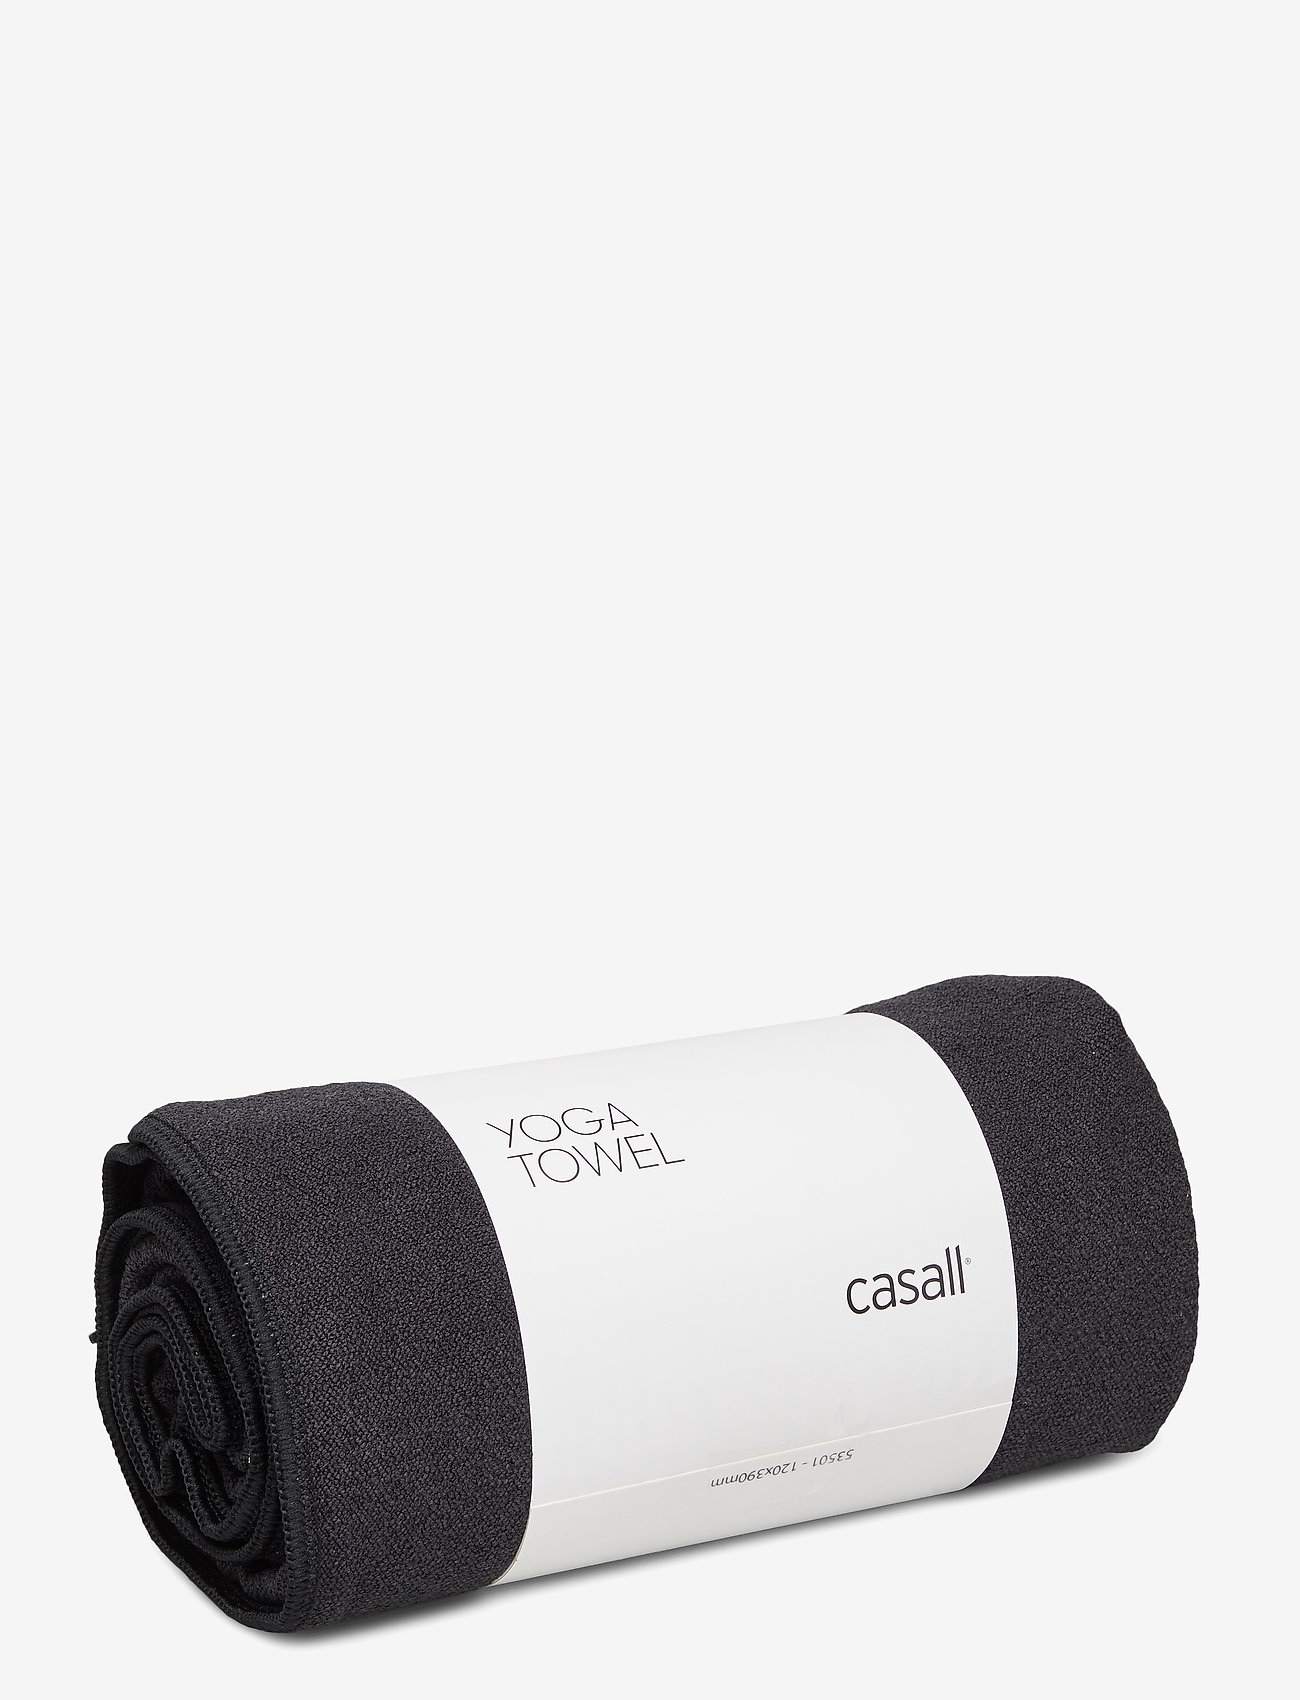 Casall - Yoga towel - maty i sprzęt do jogi - black - 0